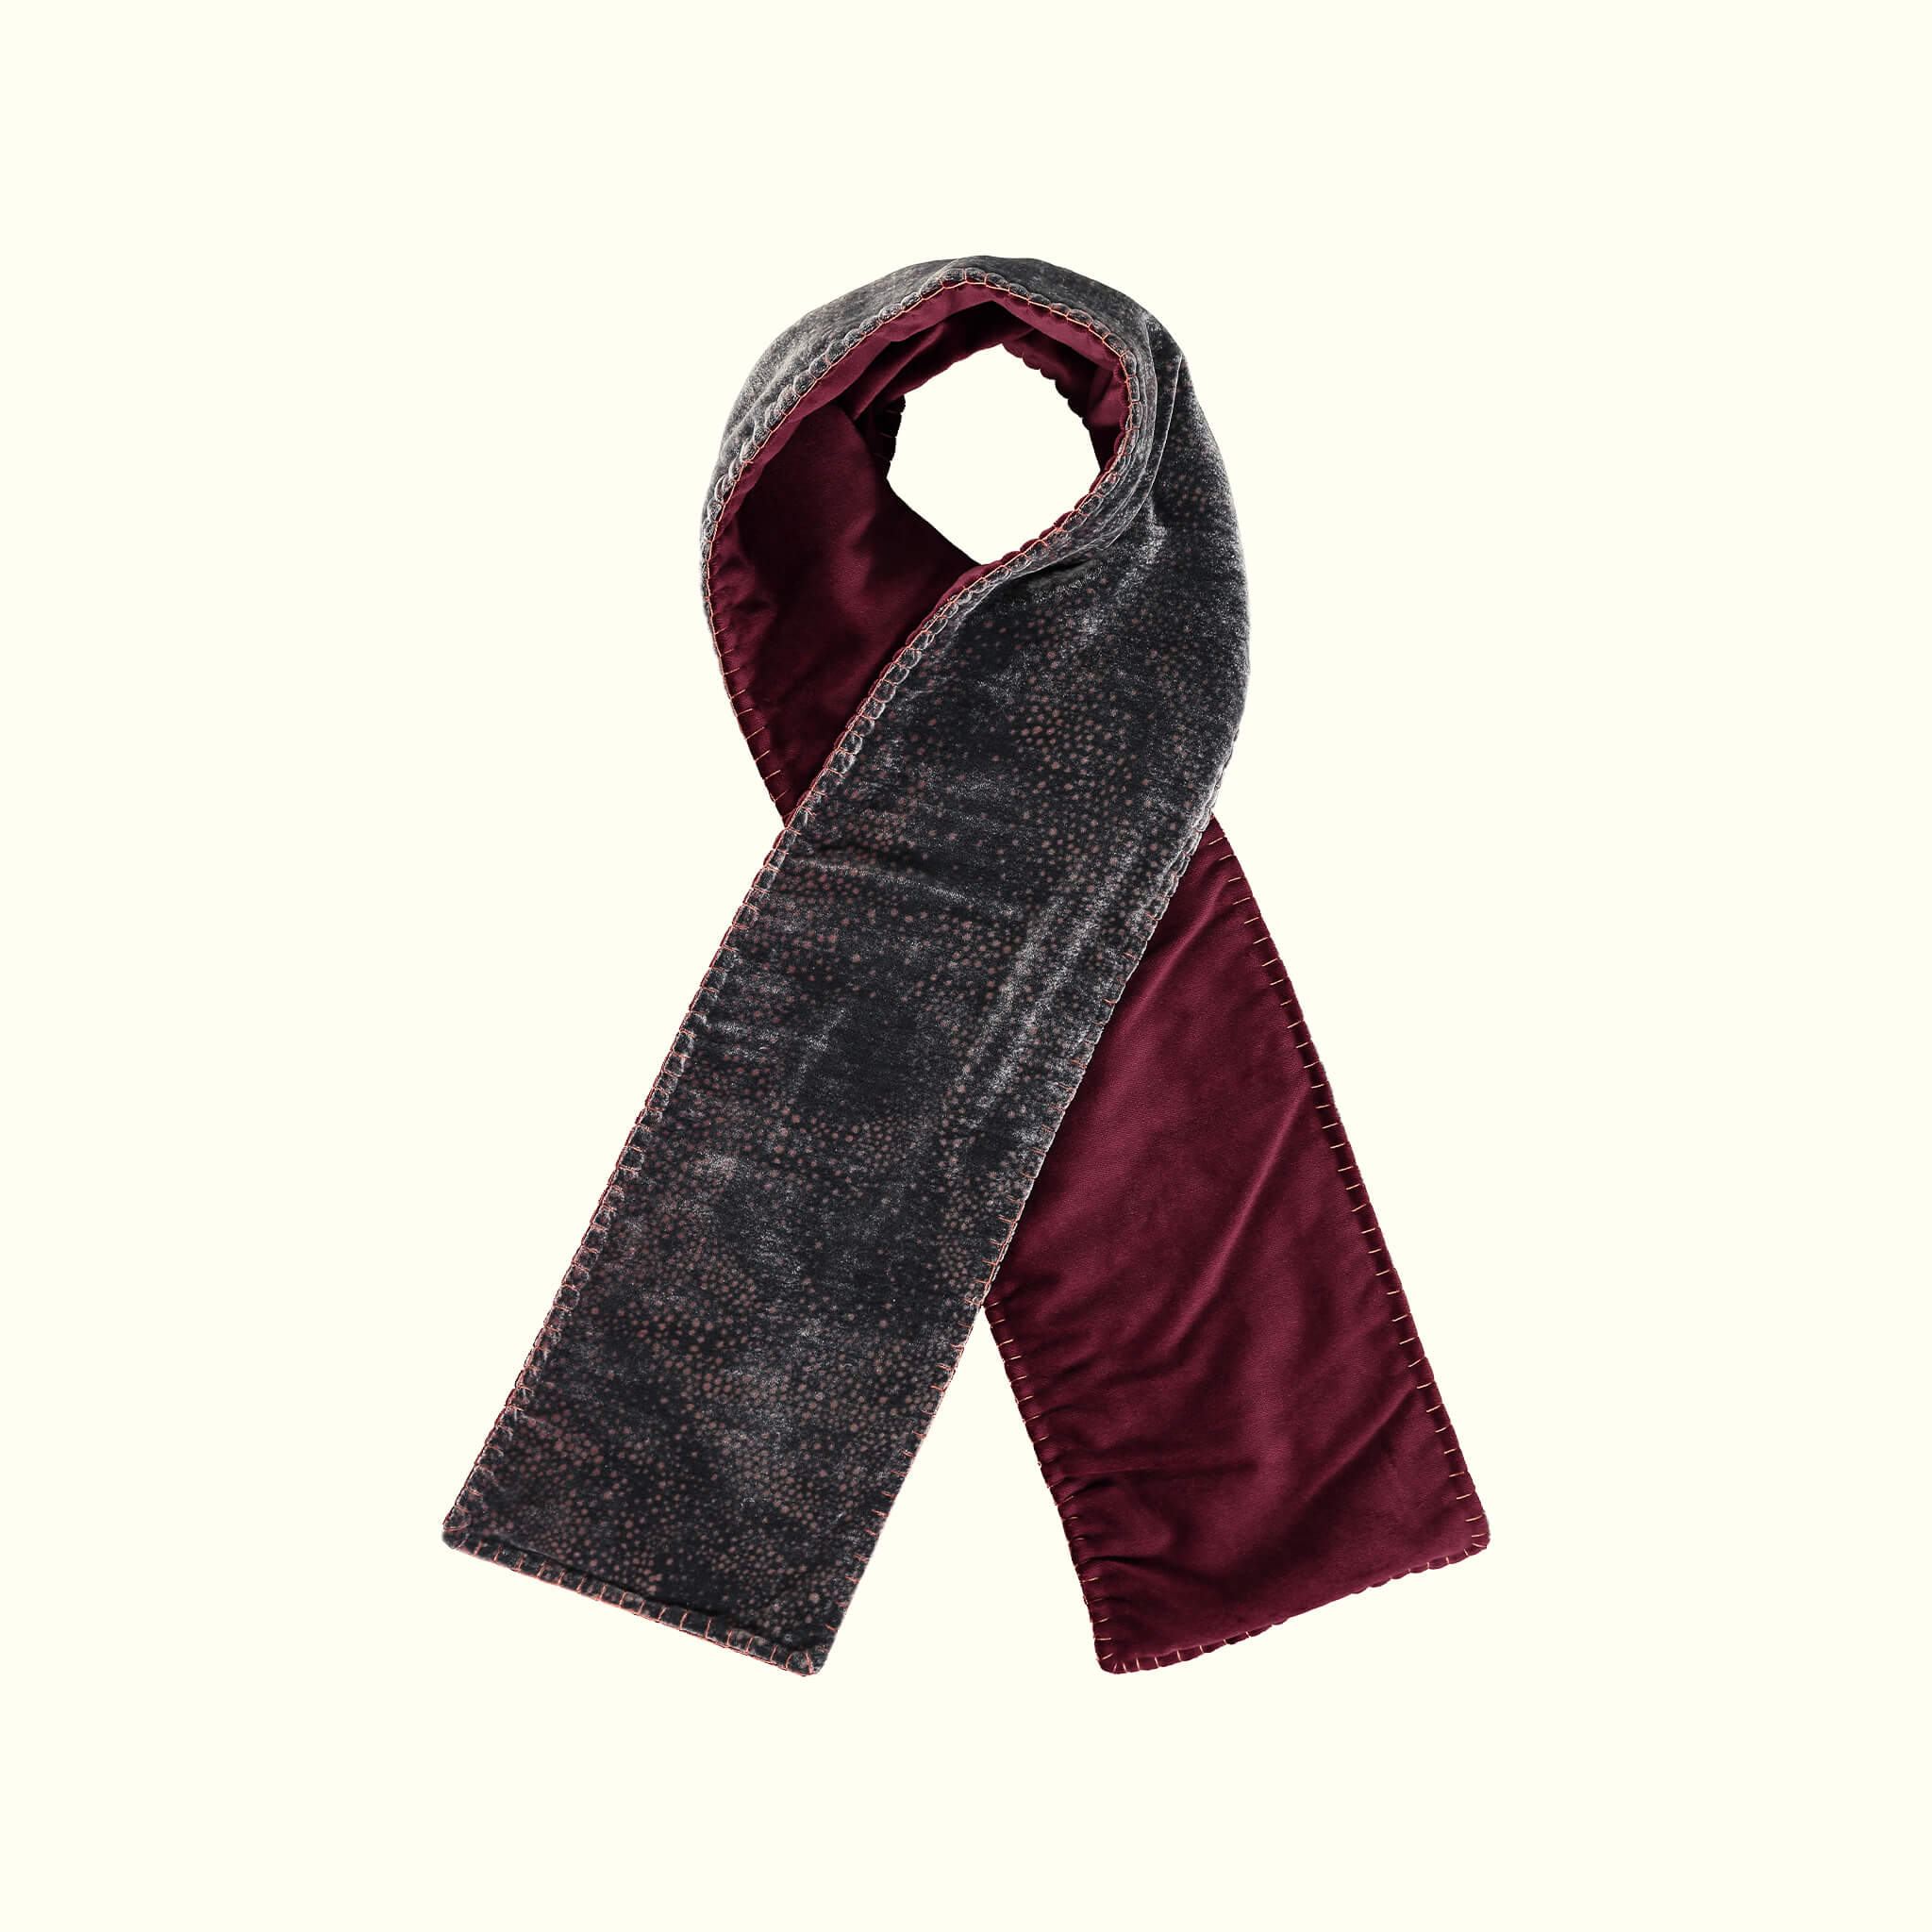 A luxury British silk velvet scarf by GVE in black and red Aurora print design.